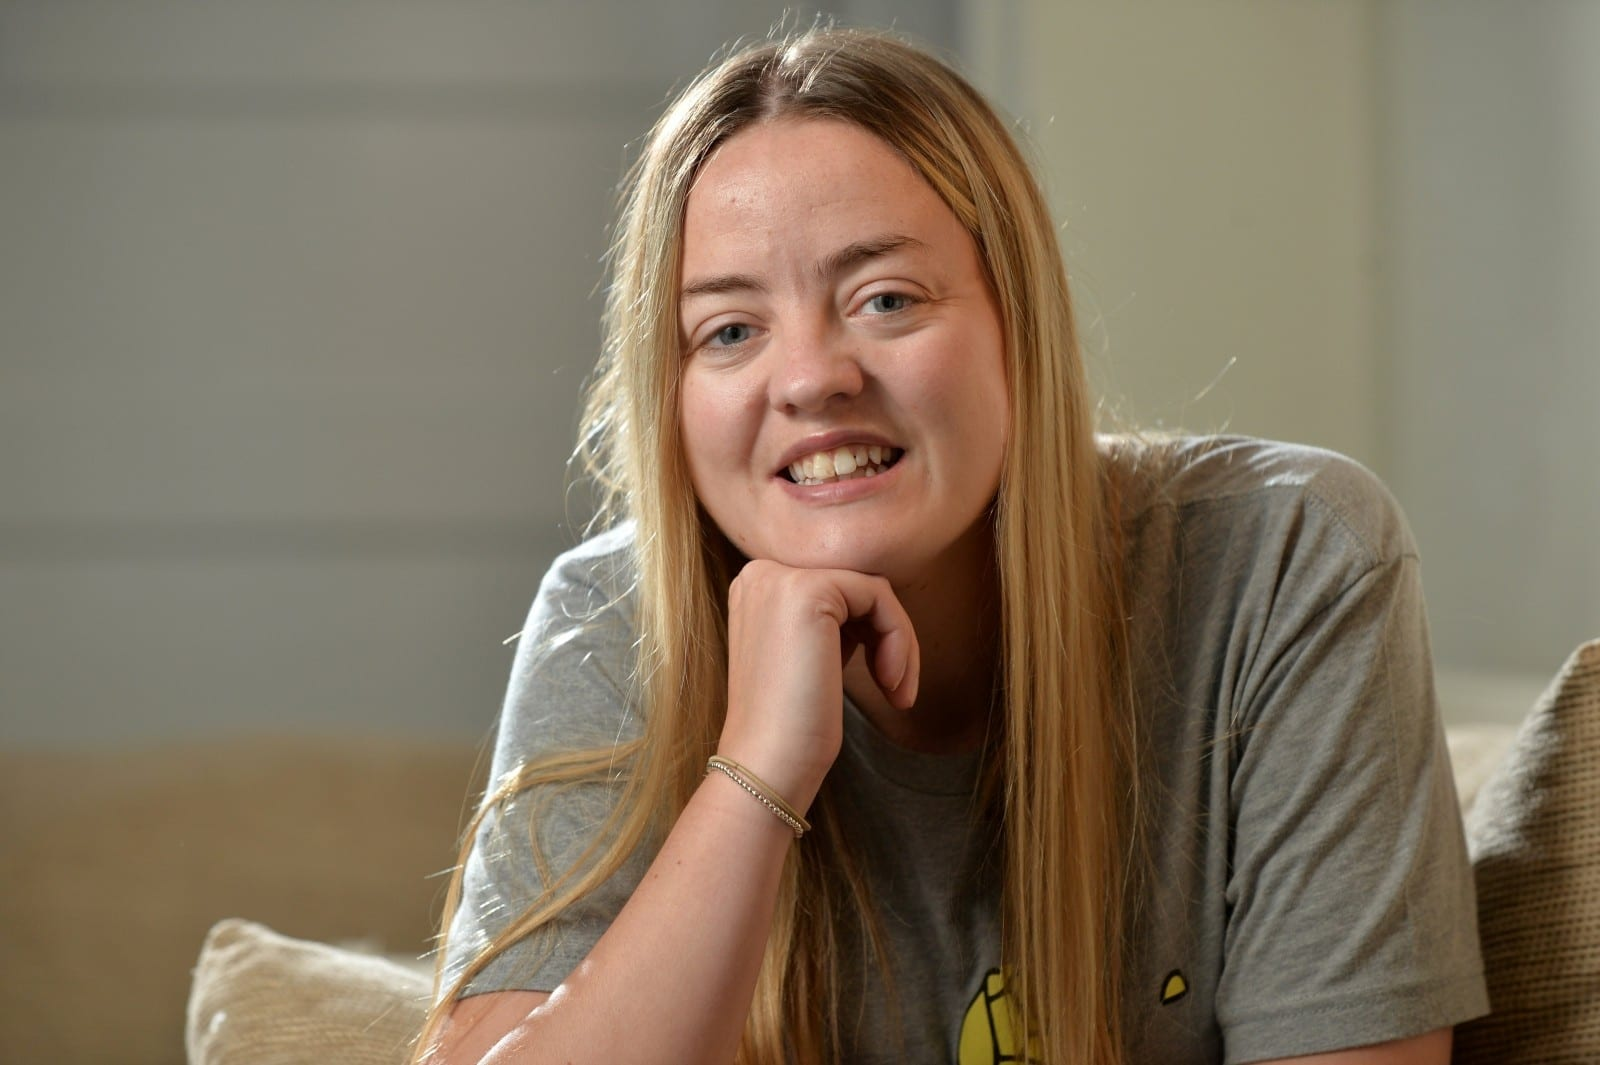 Young Woman Suffering From Cystic Fibrosis Told She Is Not Ill Enough To Have A Life-Saving Double Lung Transplant.